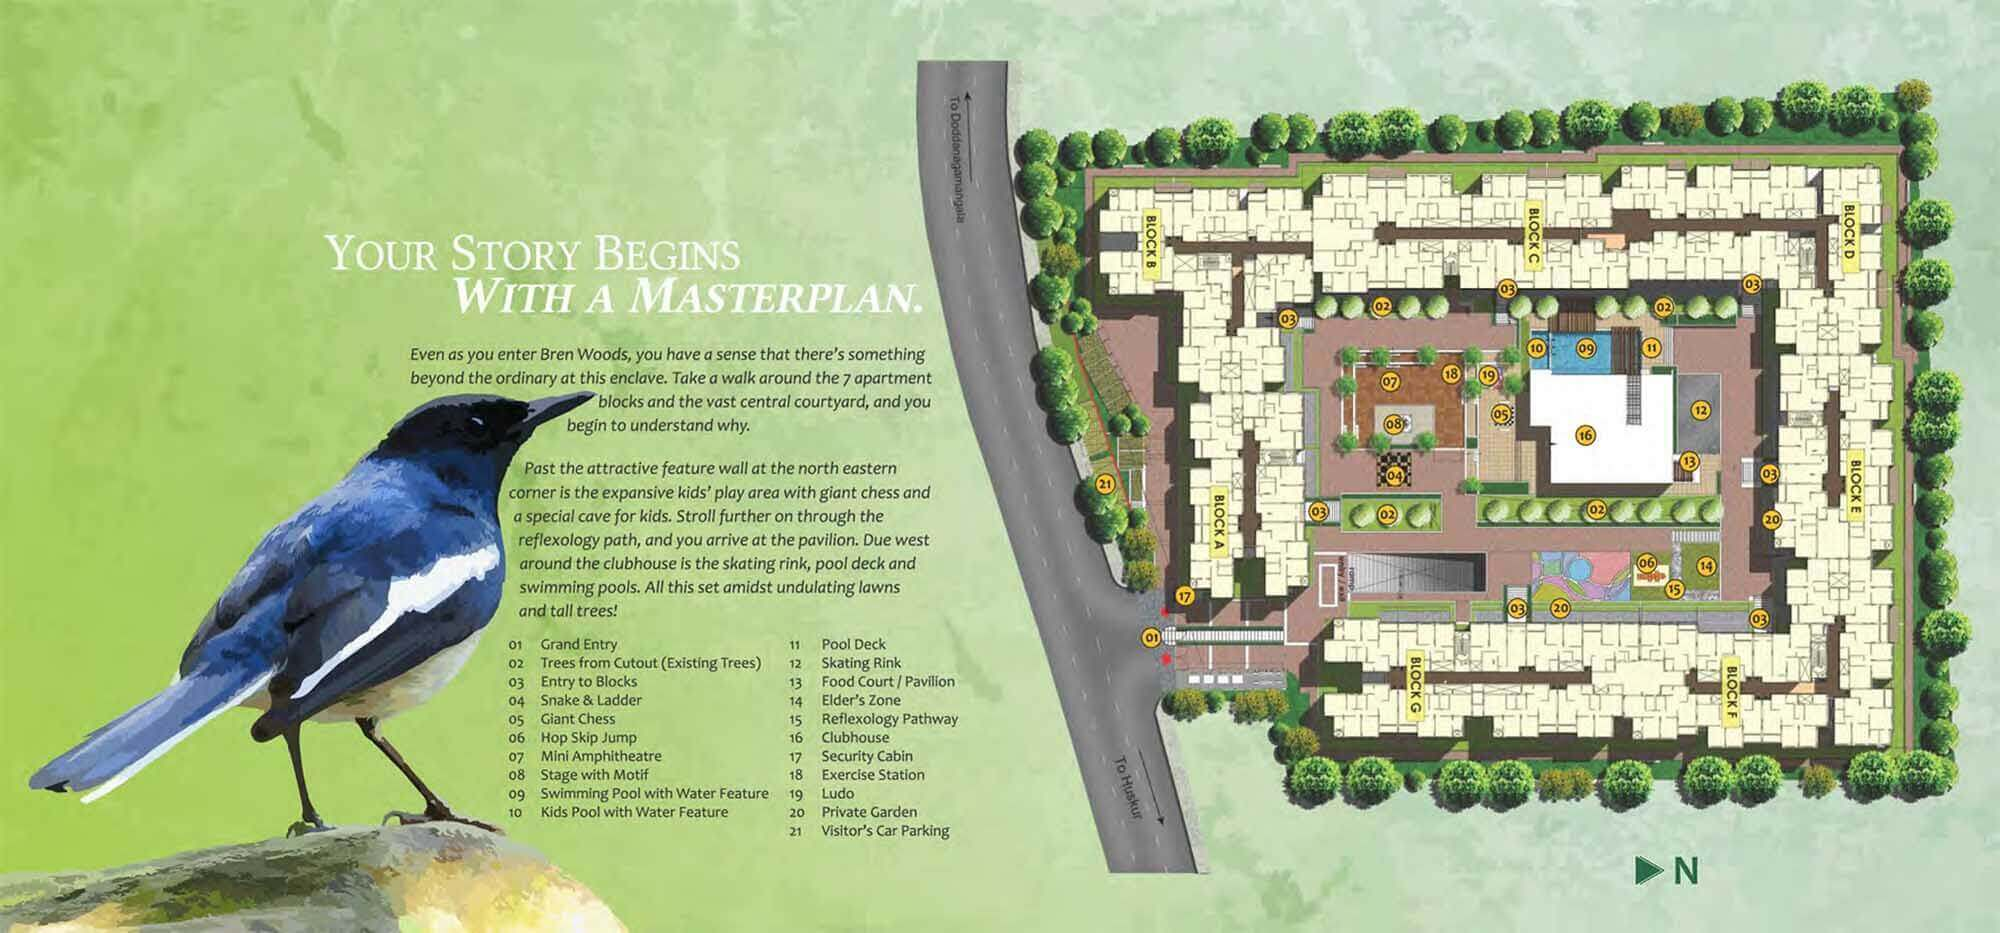 Bren Woods Hosur Road Bangalore 14391